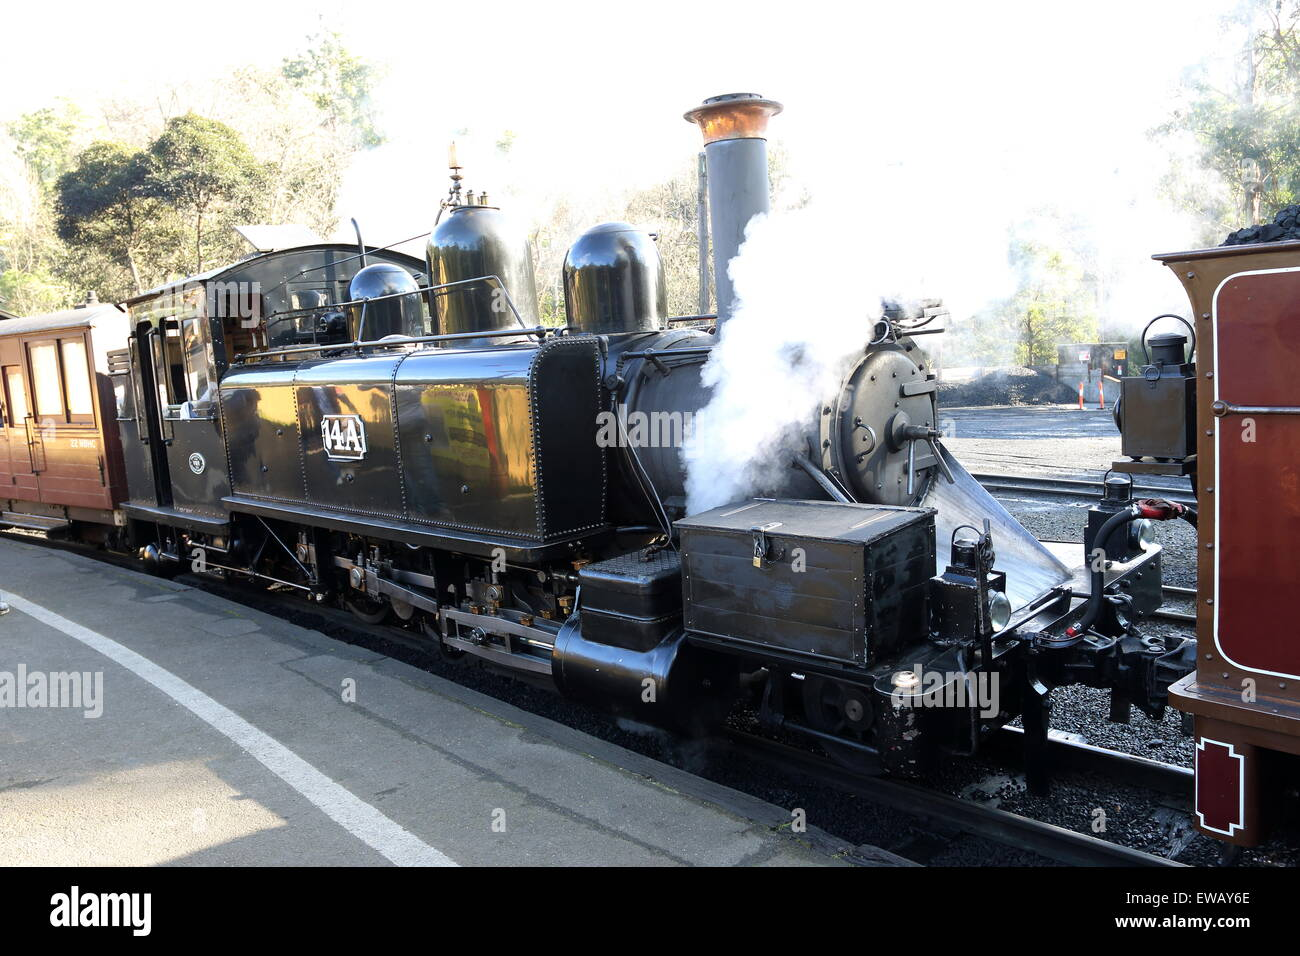 Puffing Billy Steam train at Dandenong Ranges Victoria Australia - Stock Image